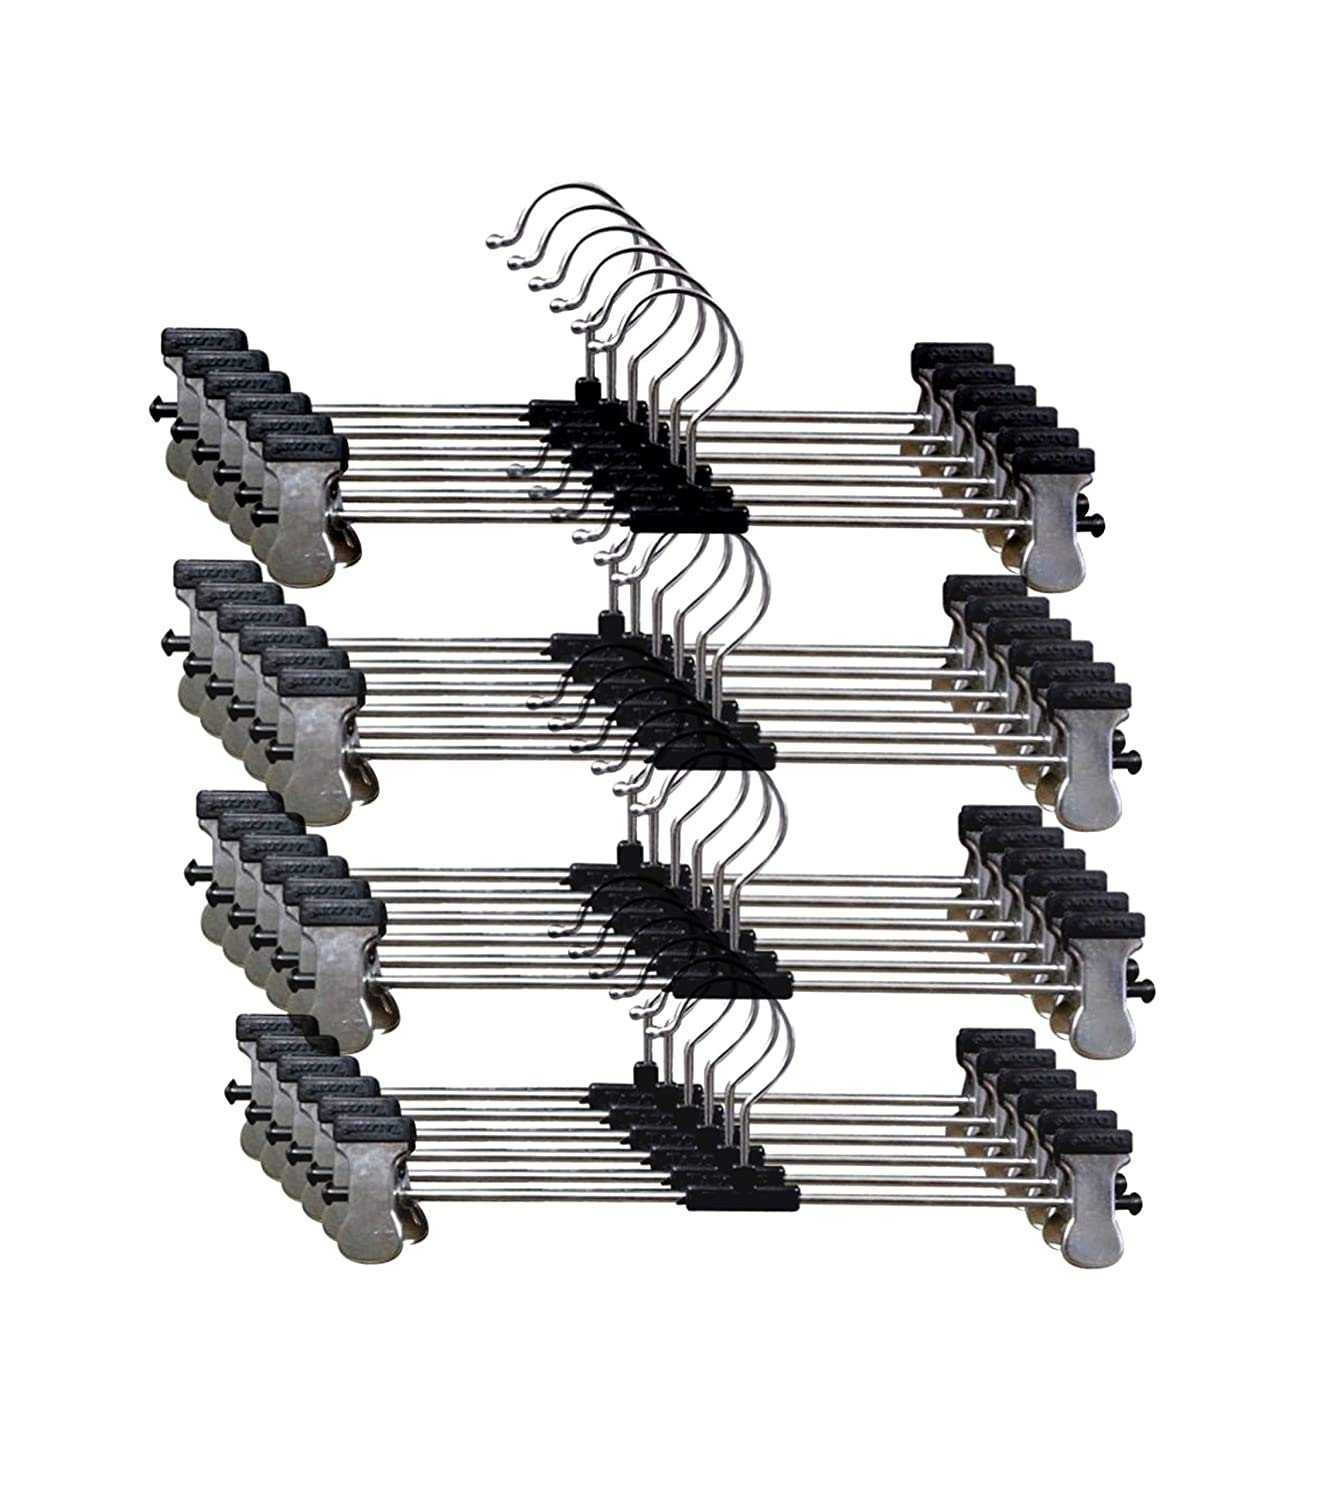 Stainless Steel Hangers Pack Of 24 Adjustable Non Slip Clips